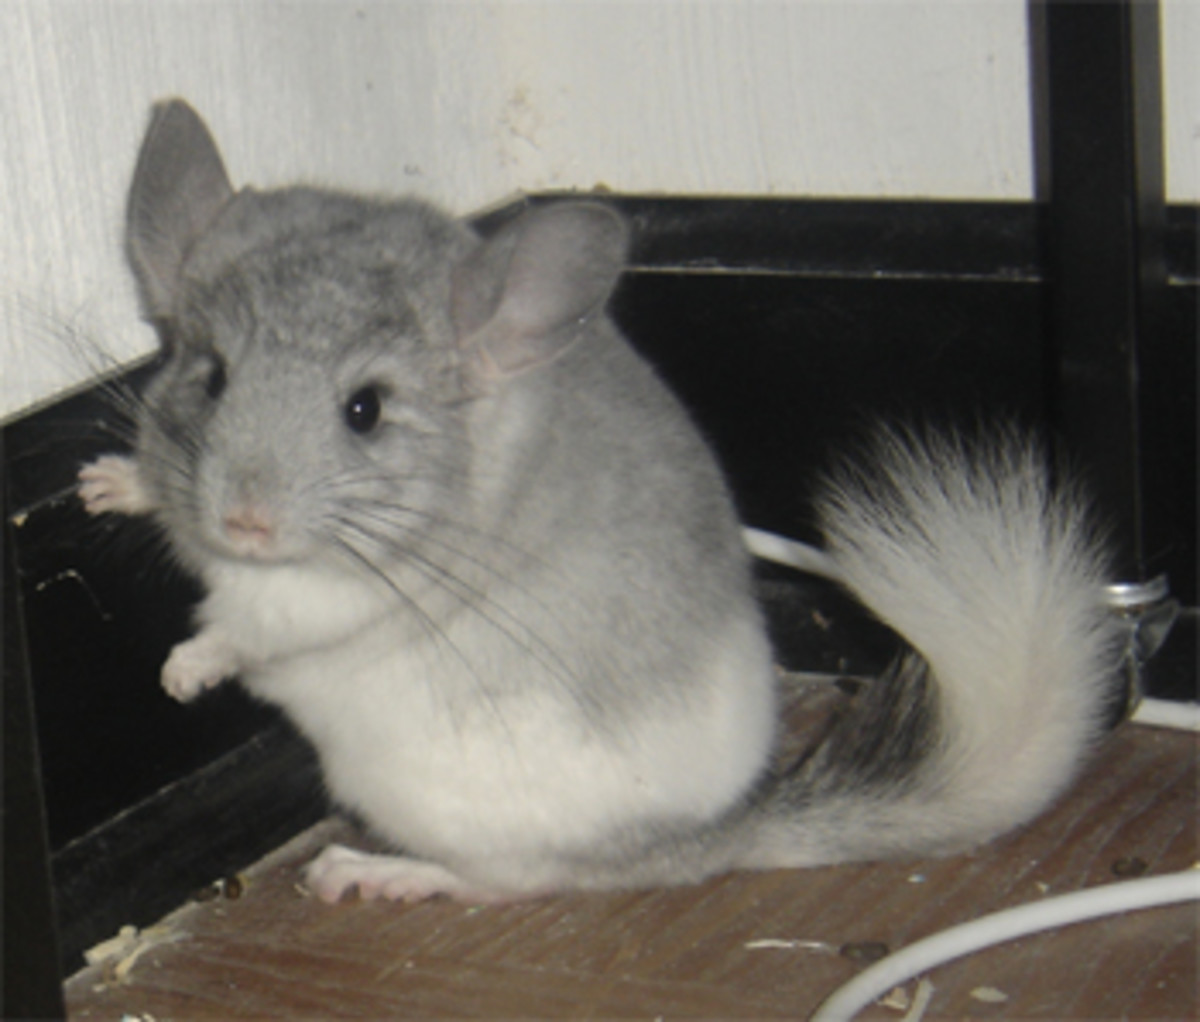 Chiko the chinchilla. Passed away 08.31.07